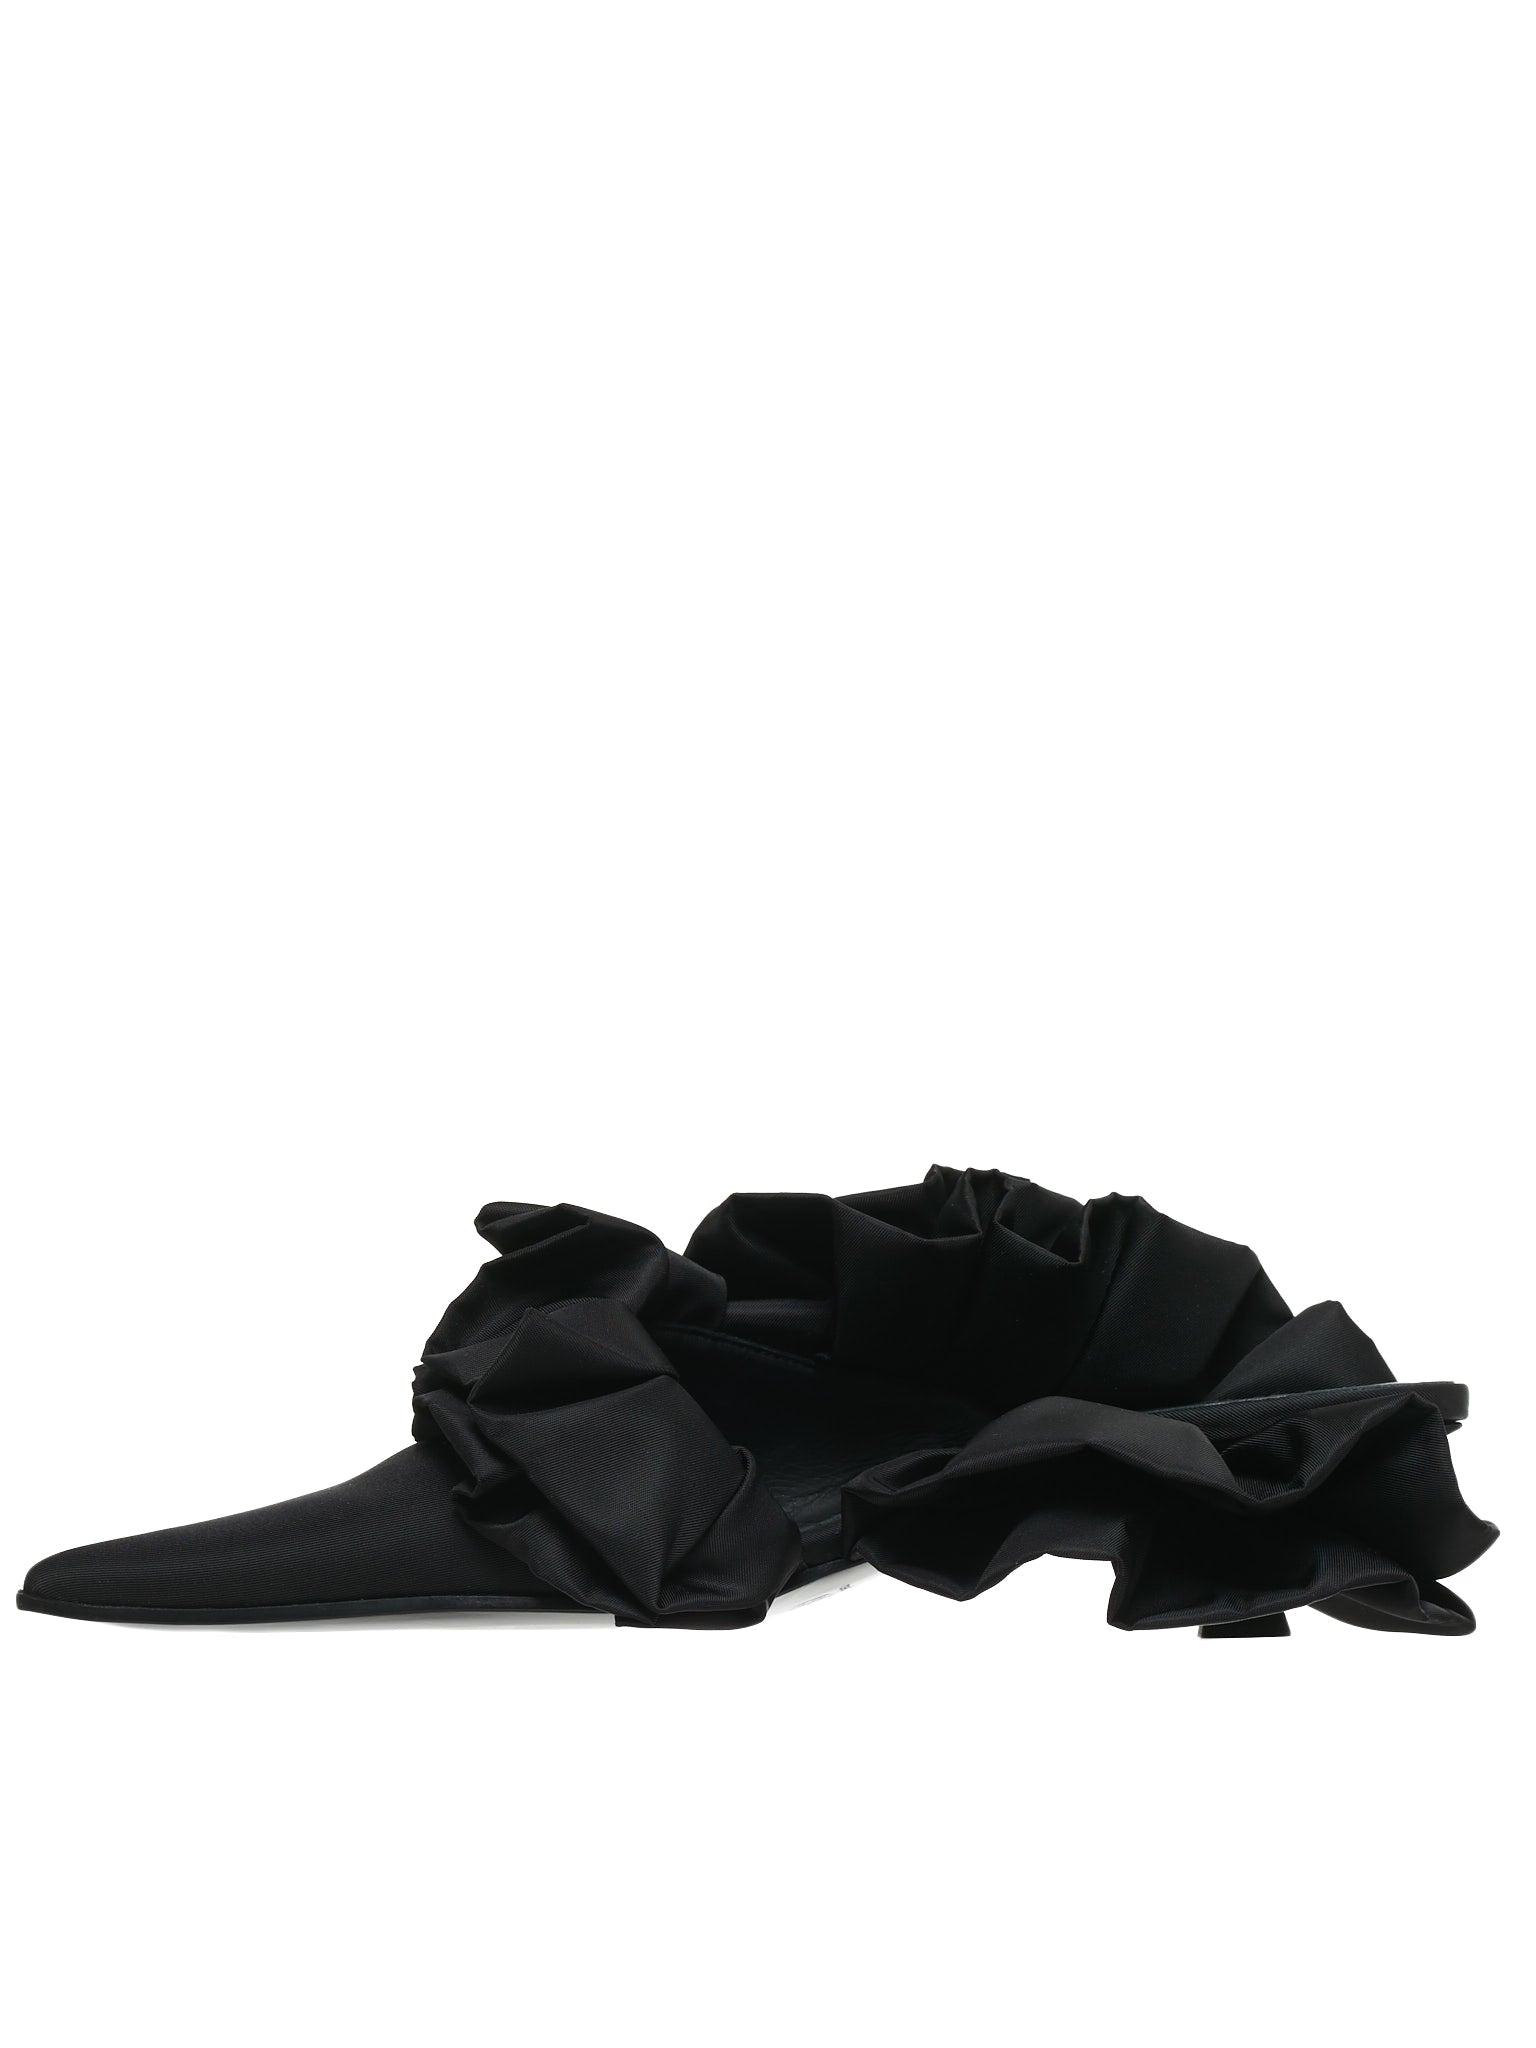 MM6 Maison Margiela Flats - Hlorenzo Back